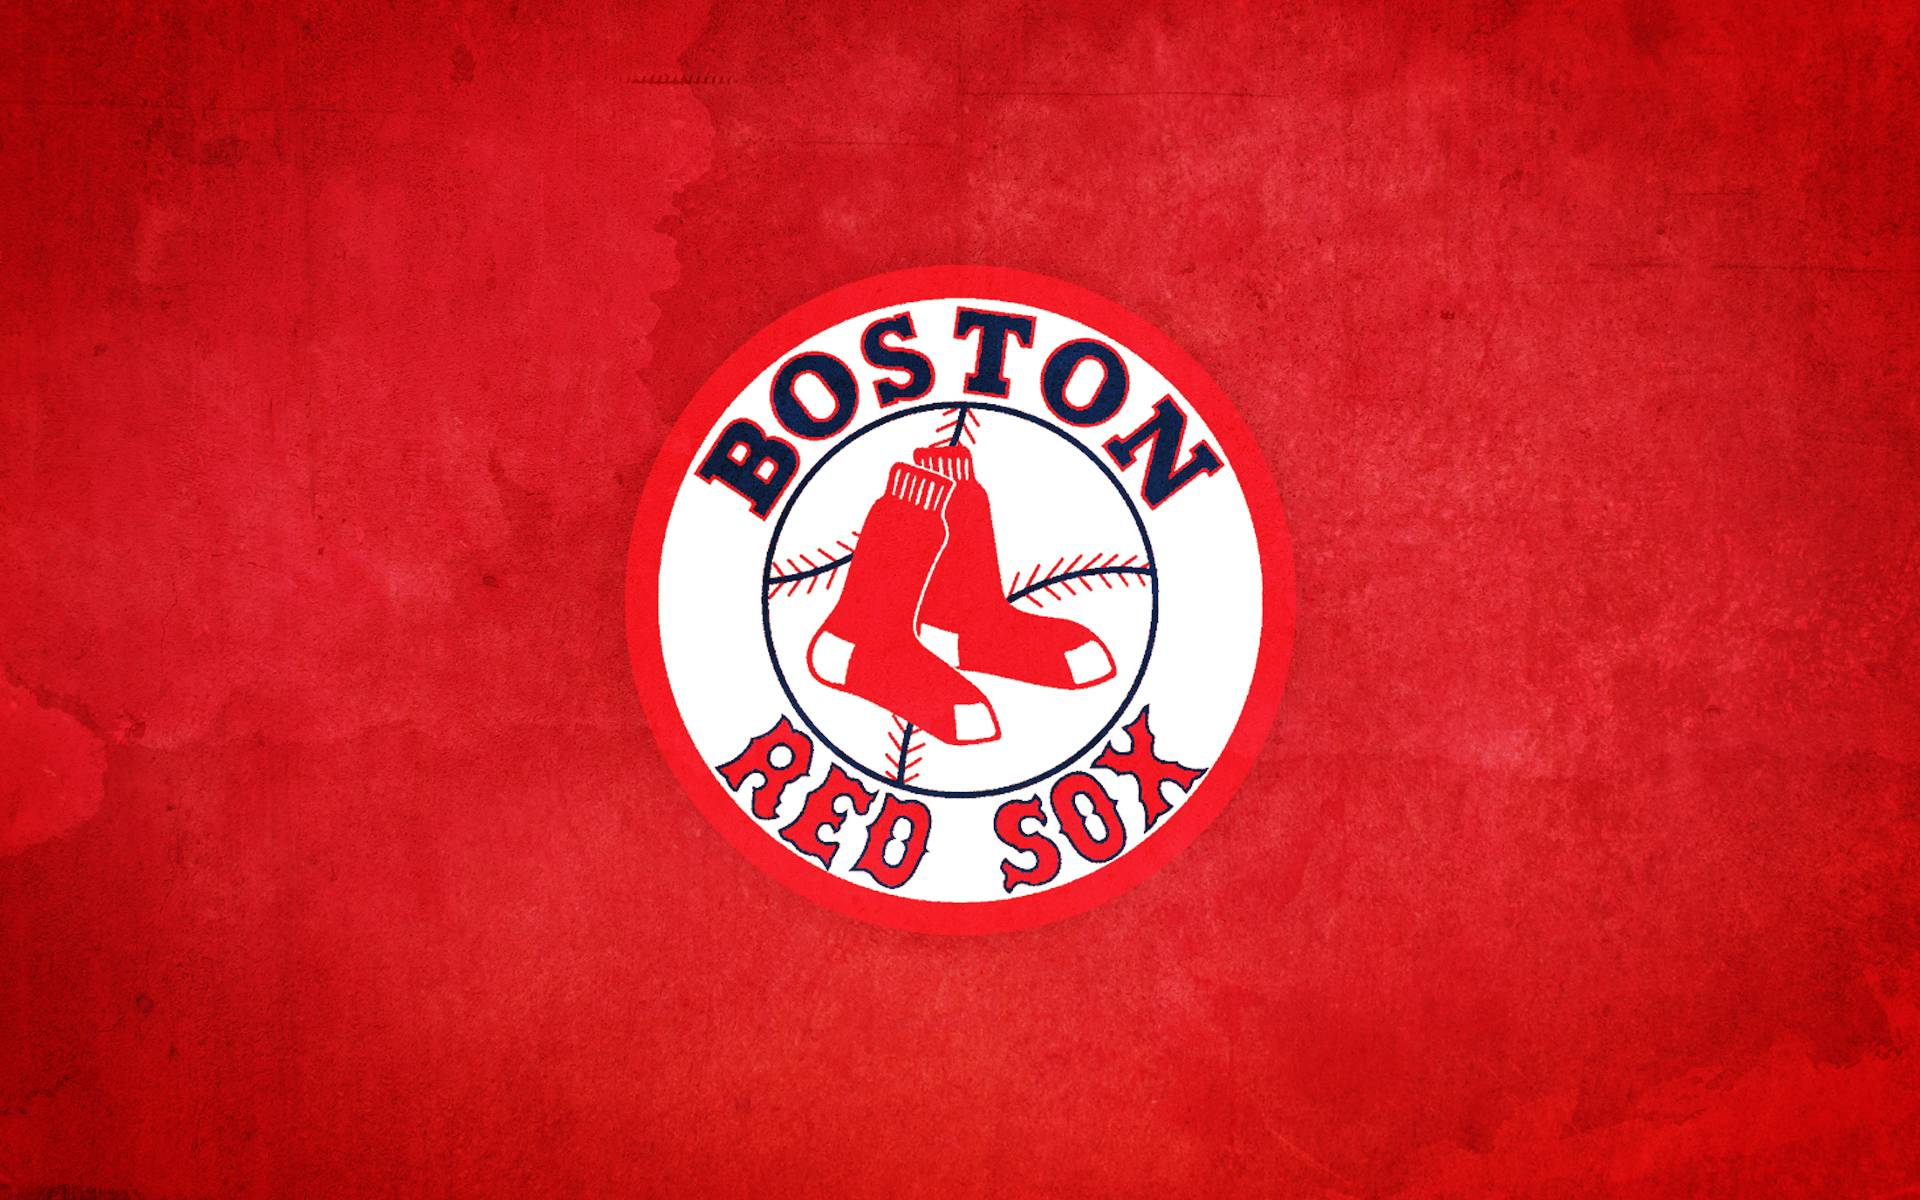 Wallpaper download free image search 2017 - Red Sox Wallpapers Full Hd Wallpaper Search